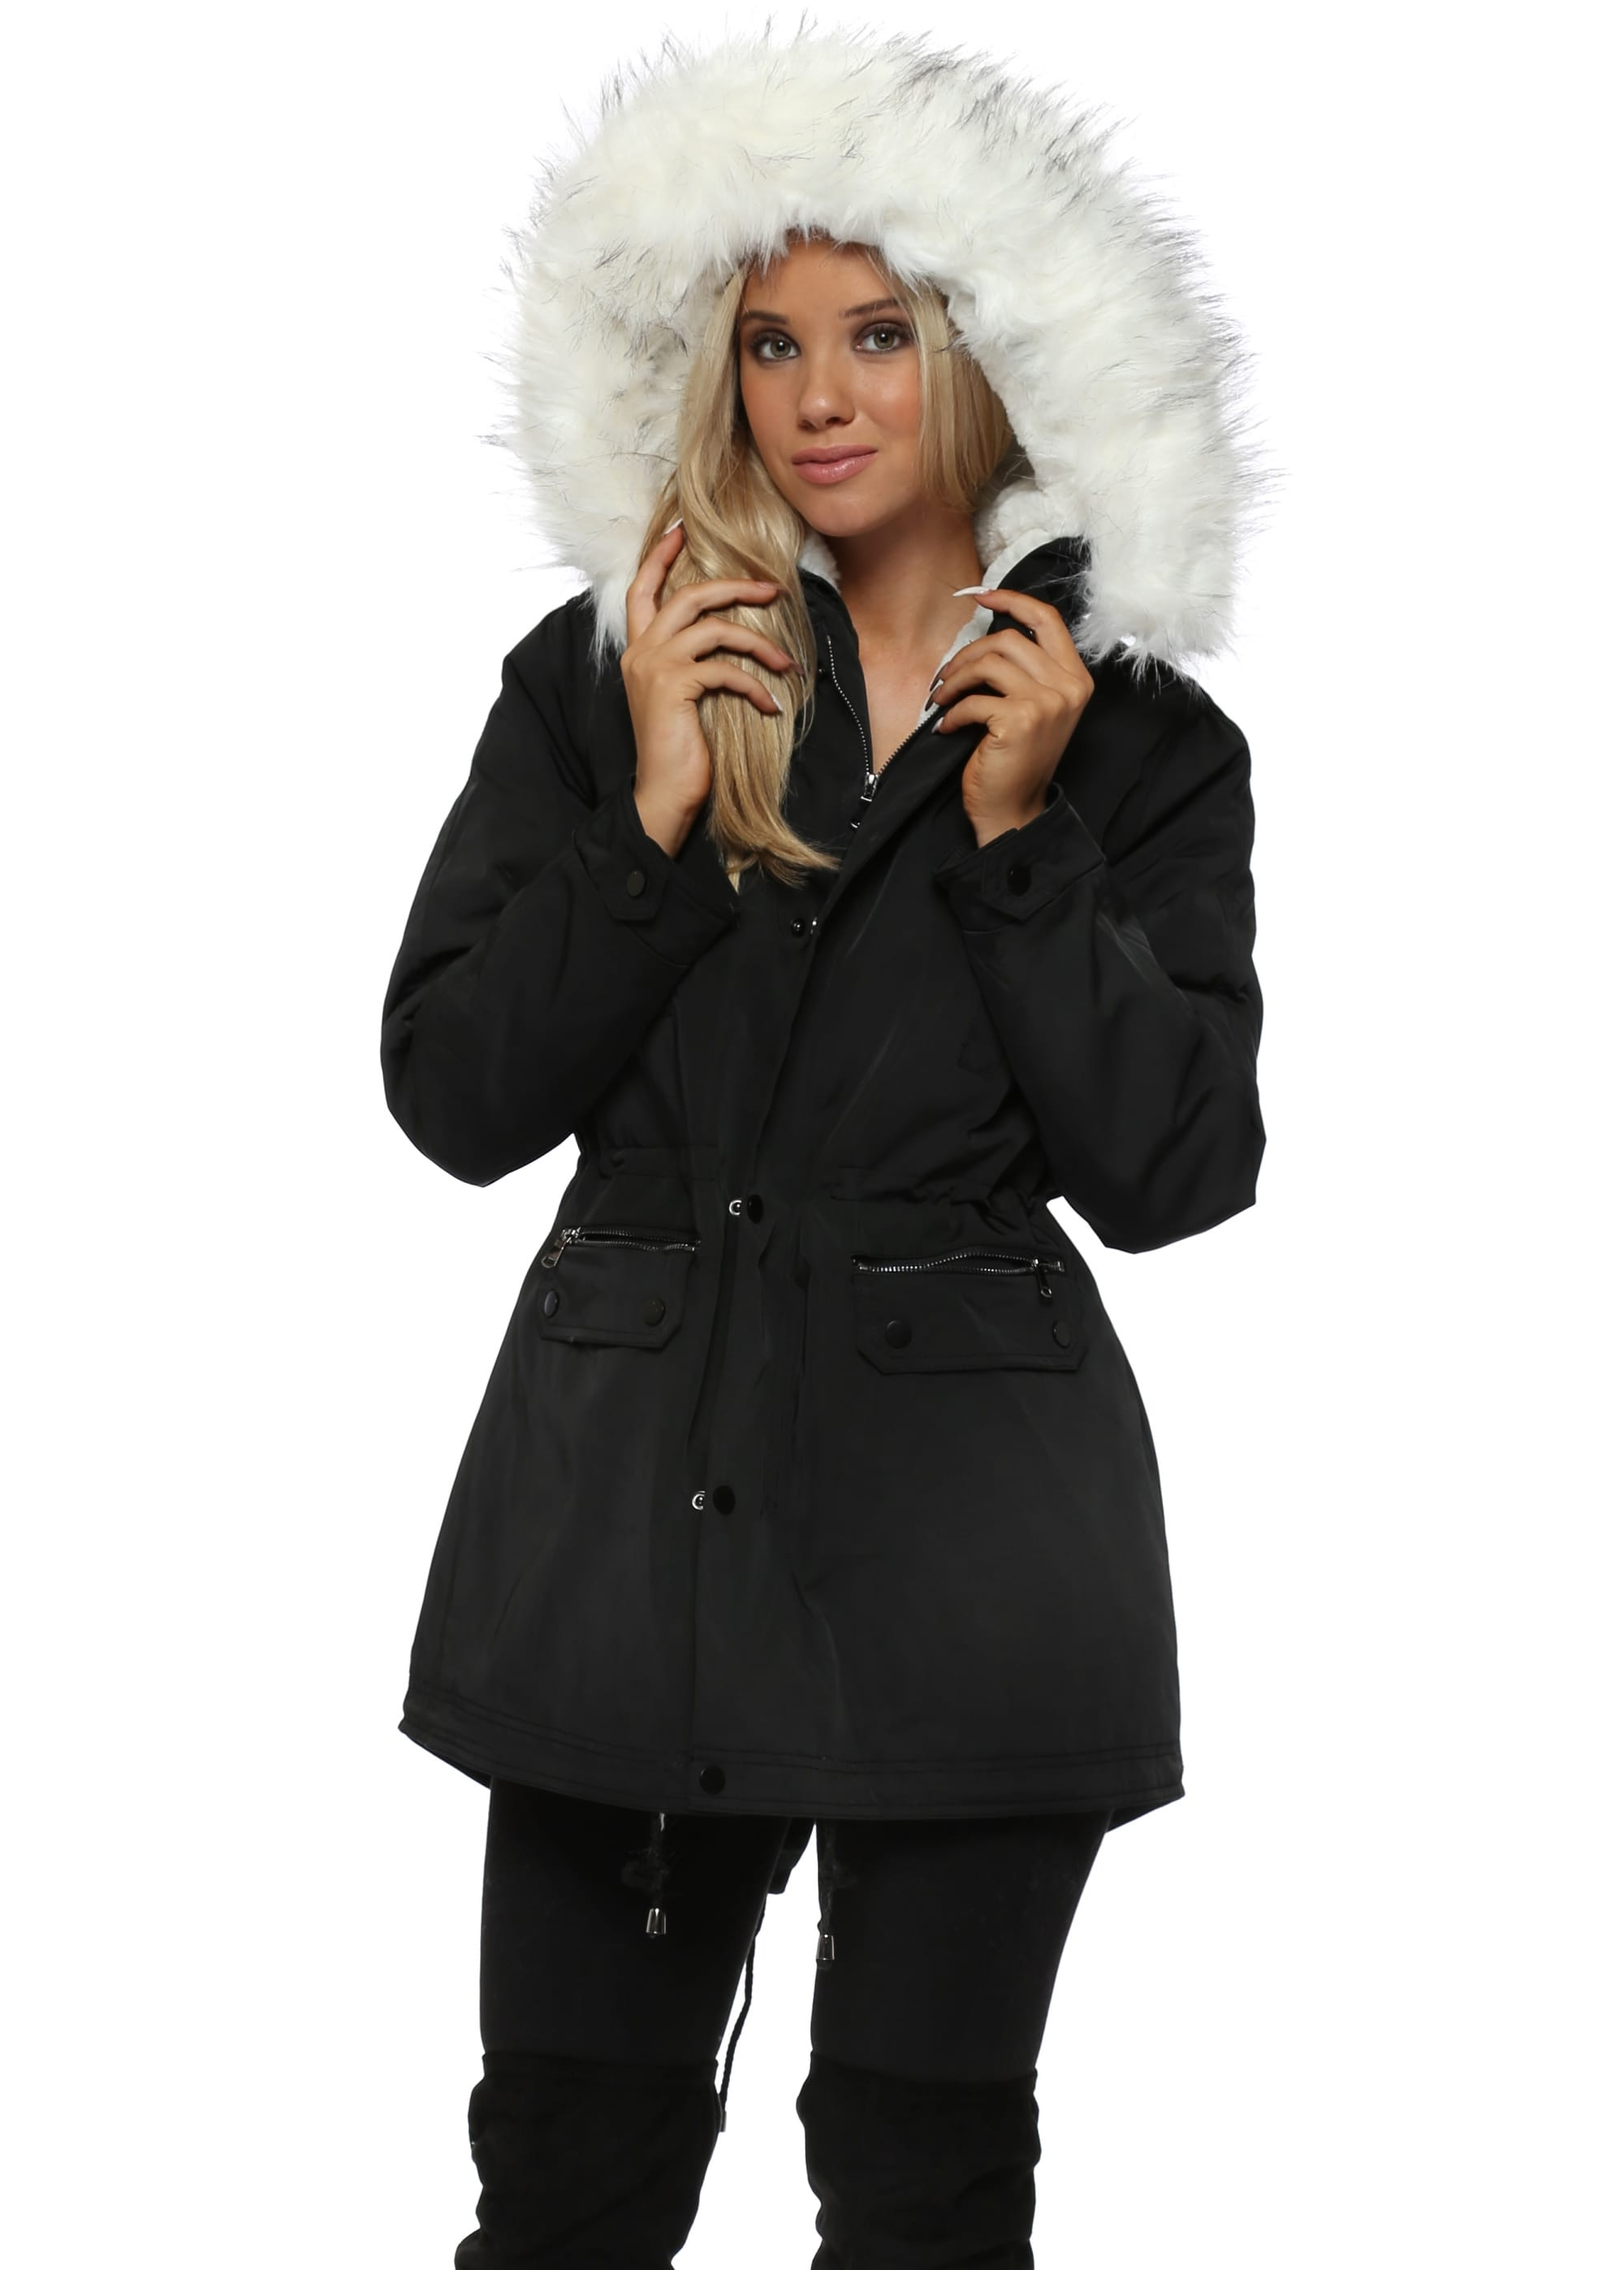 Black Parka With White Fur Hood